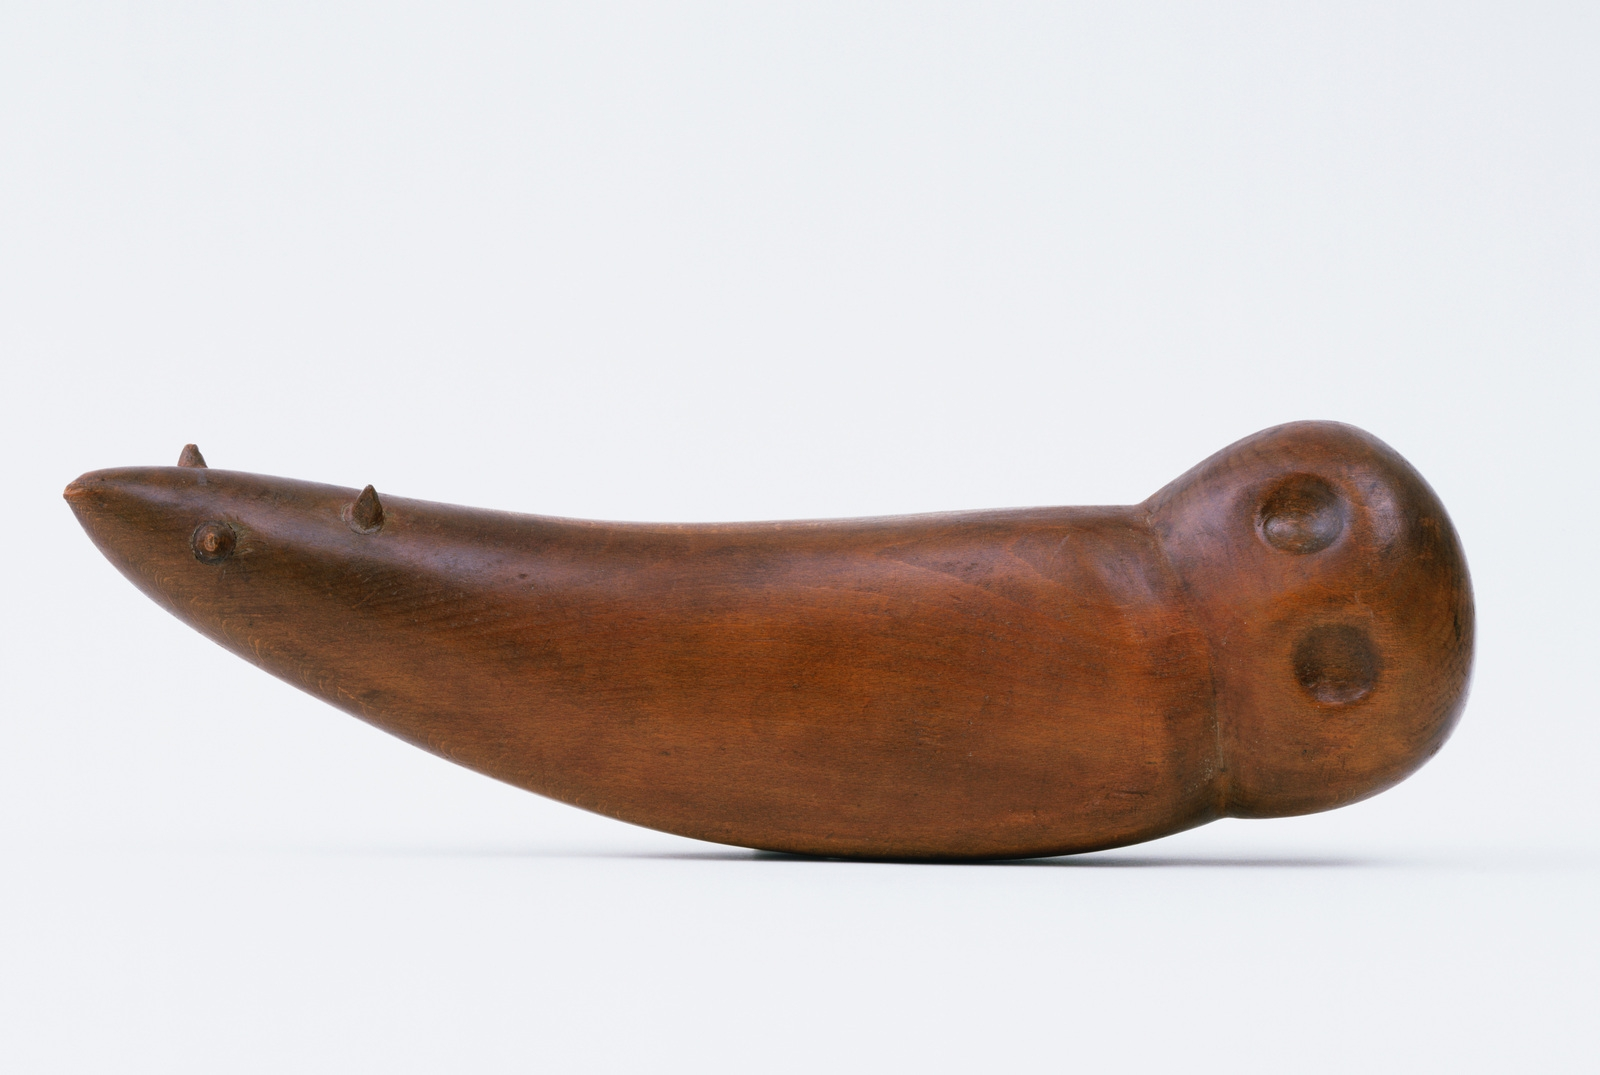 Disagreeable Object. 1931 image